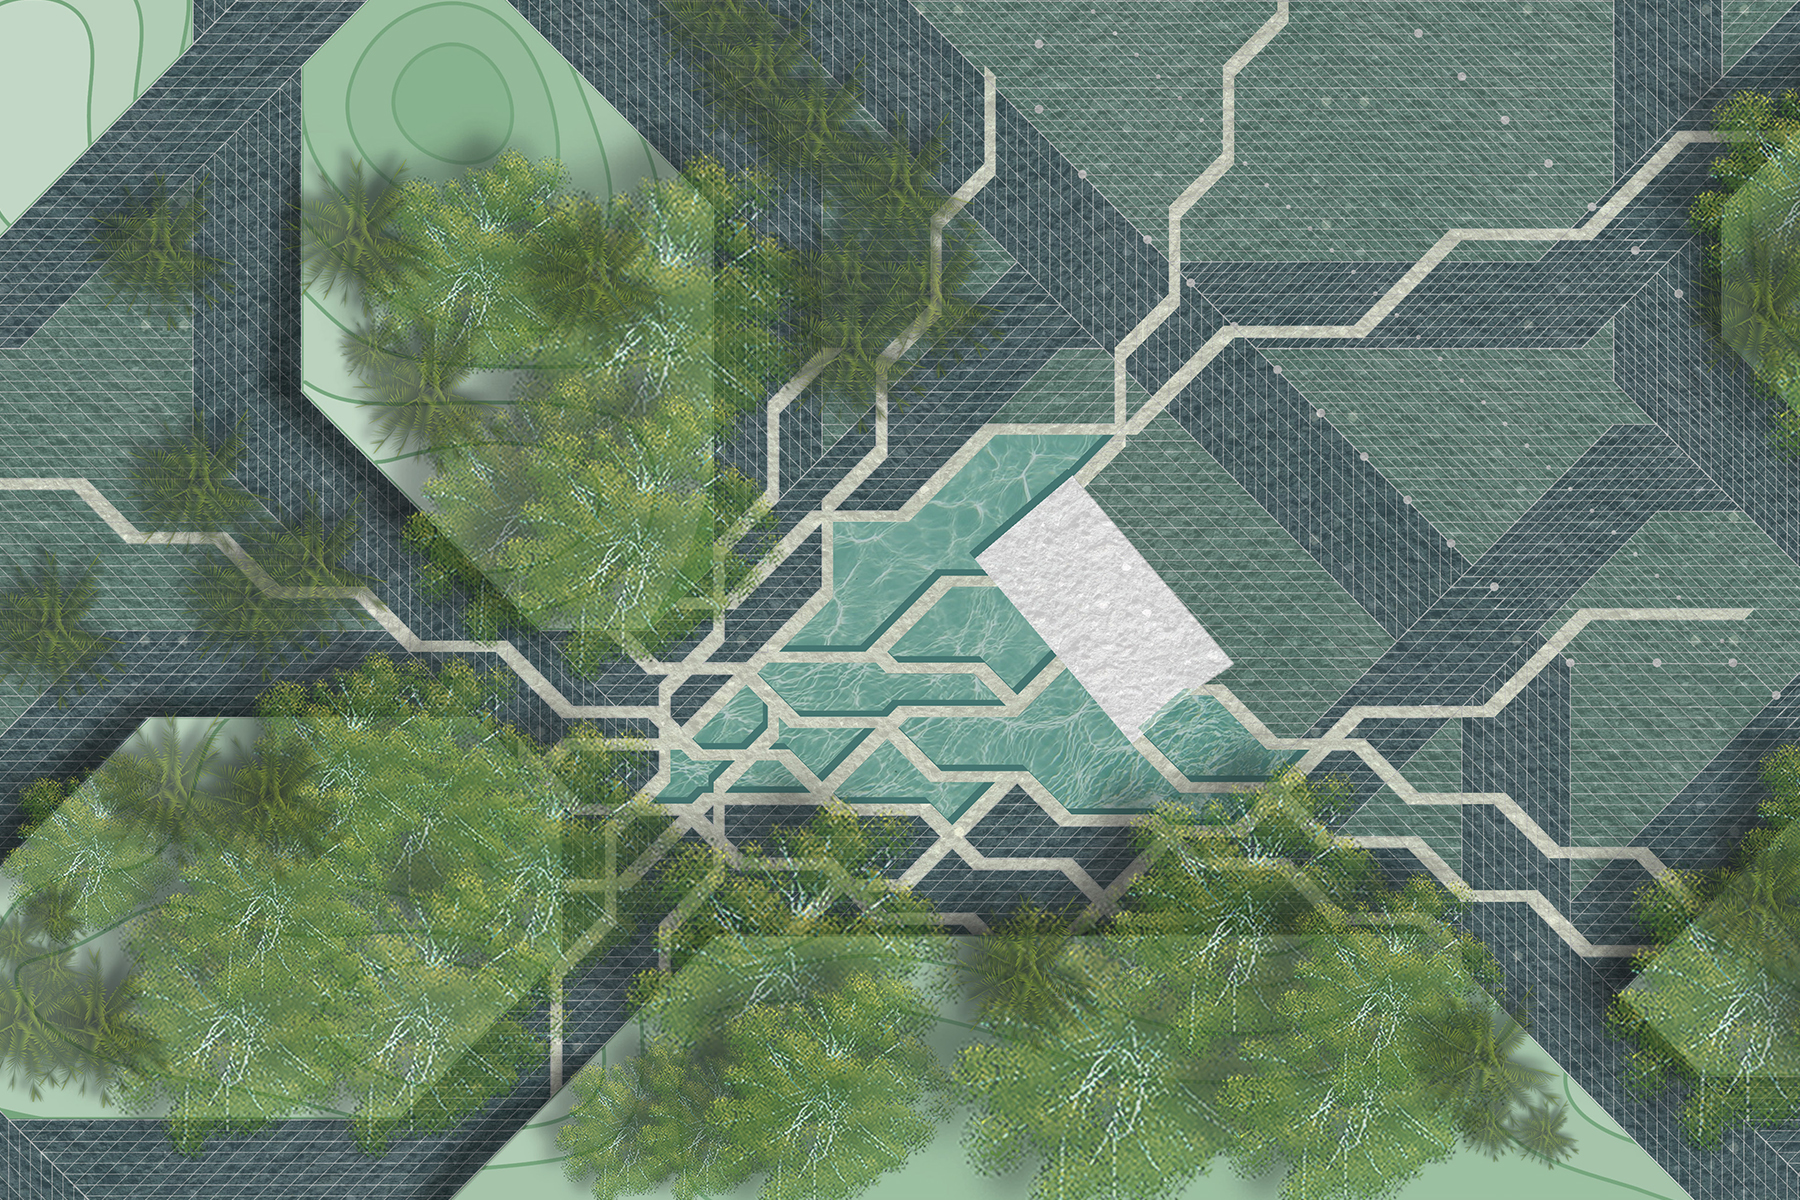 BA_Hermas_Rendered Plan Detail_4.jpg